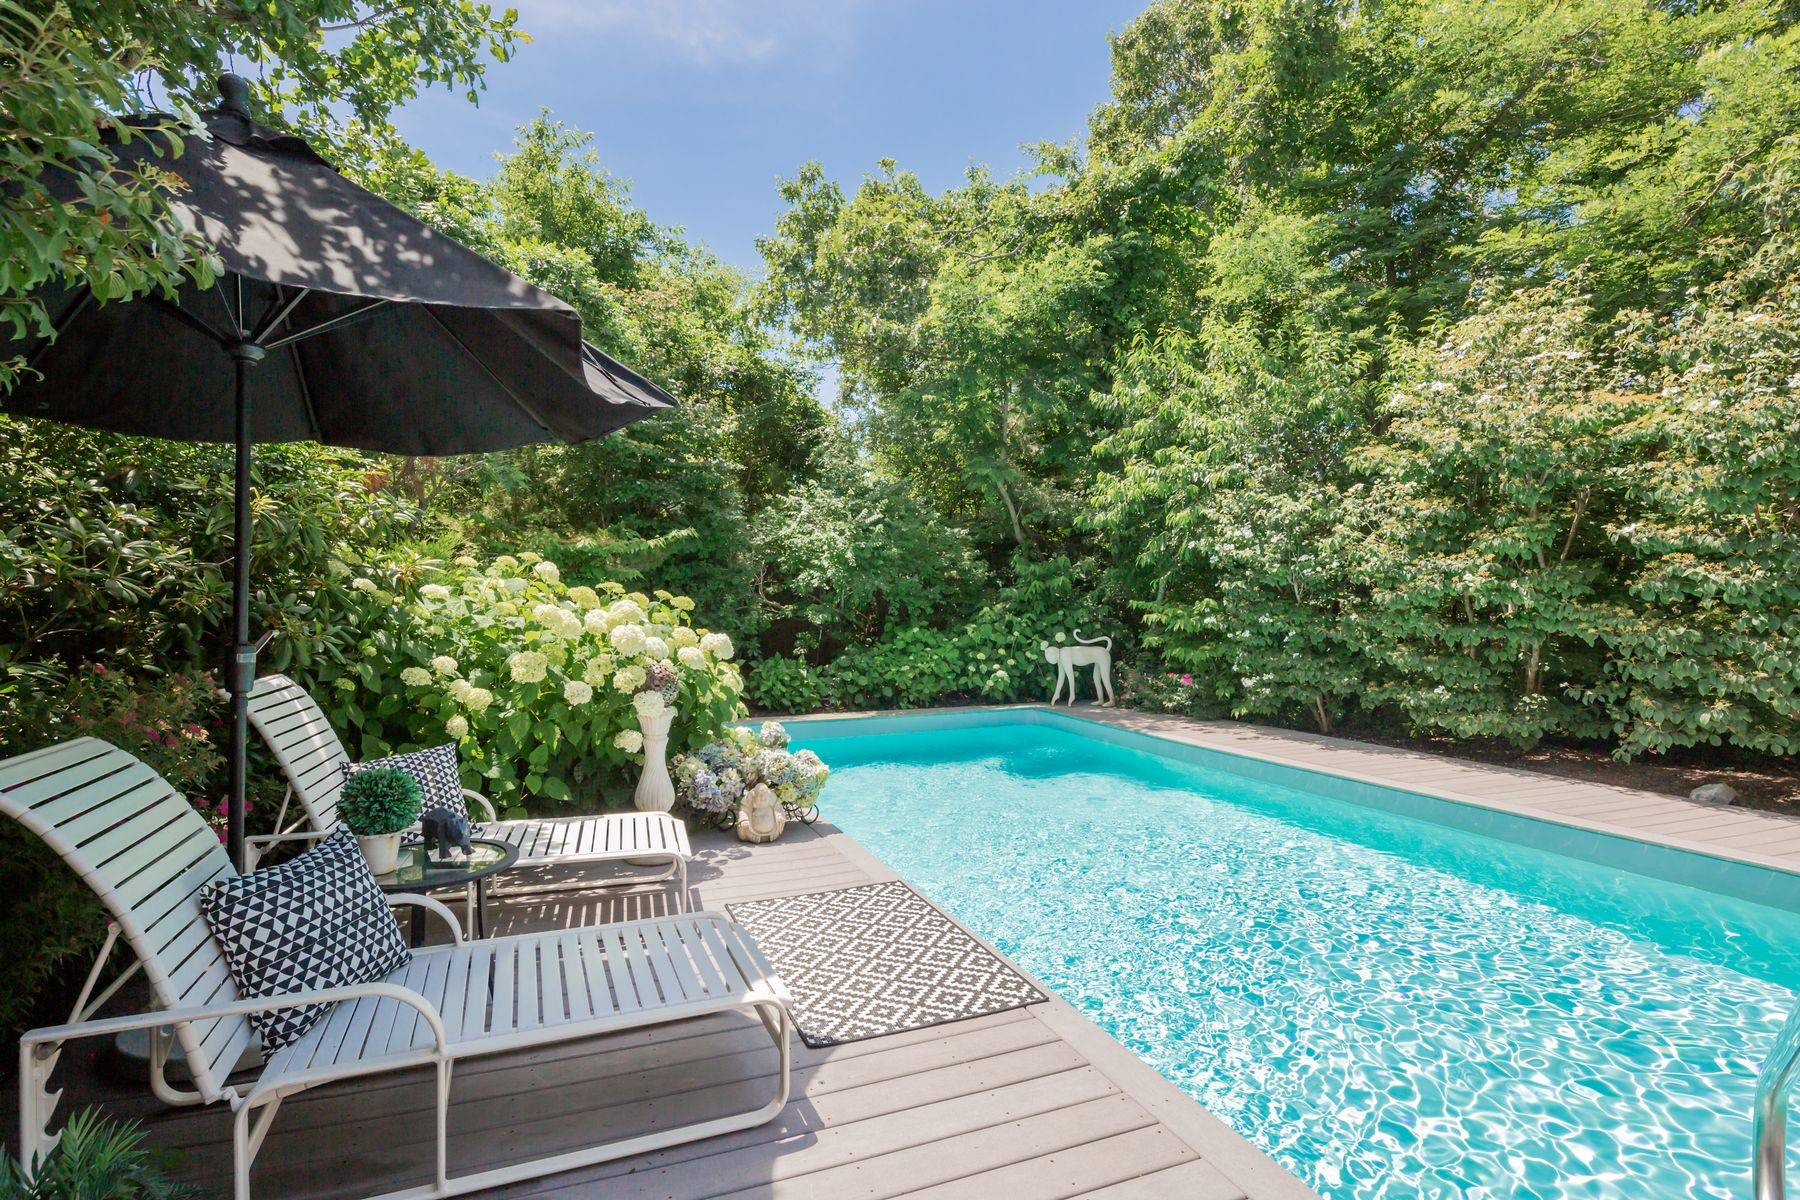 Single Family Homes for Active at Secluded Oasis In The Dunes 78 Cliff Road Amagansett, New York 11930 United States